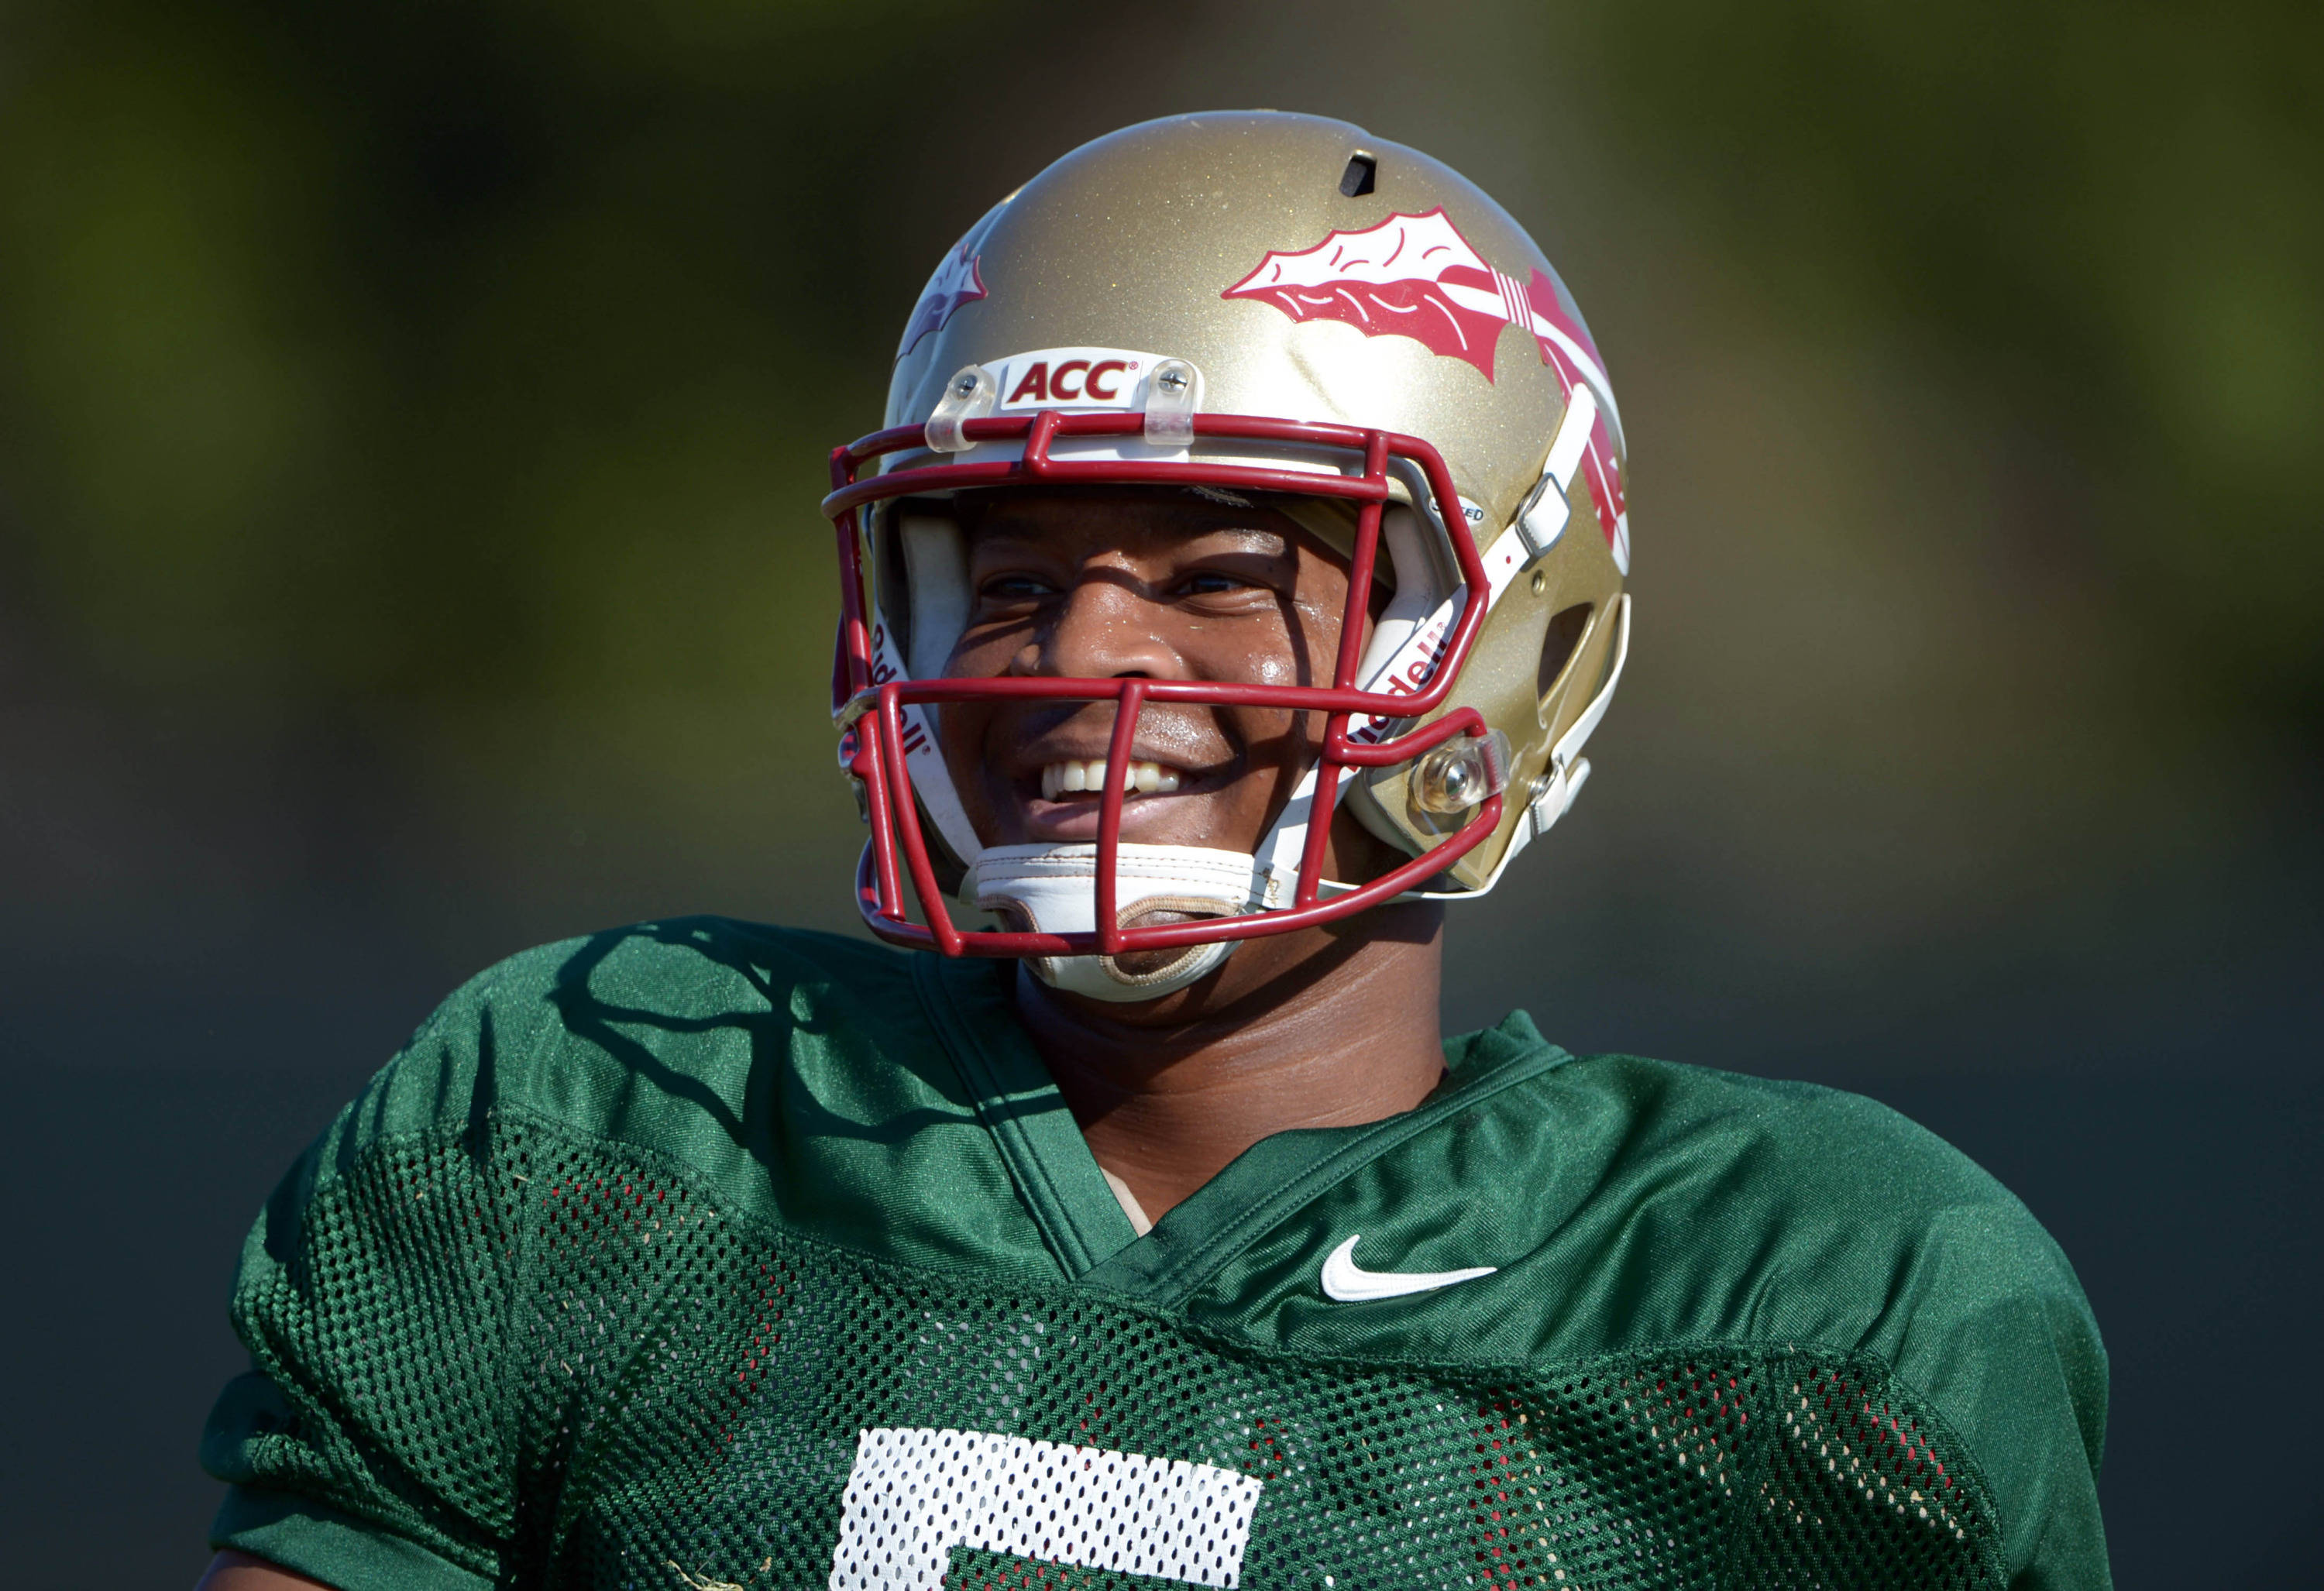 Florida State Seminoles quarterback Jameis Winston (5) at practice for the 2014 BCS National Championship against the Auburn Tigers. Mandatory Credit: Kirby Lee-USA TODAY Sports